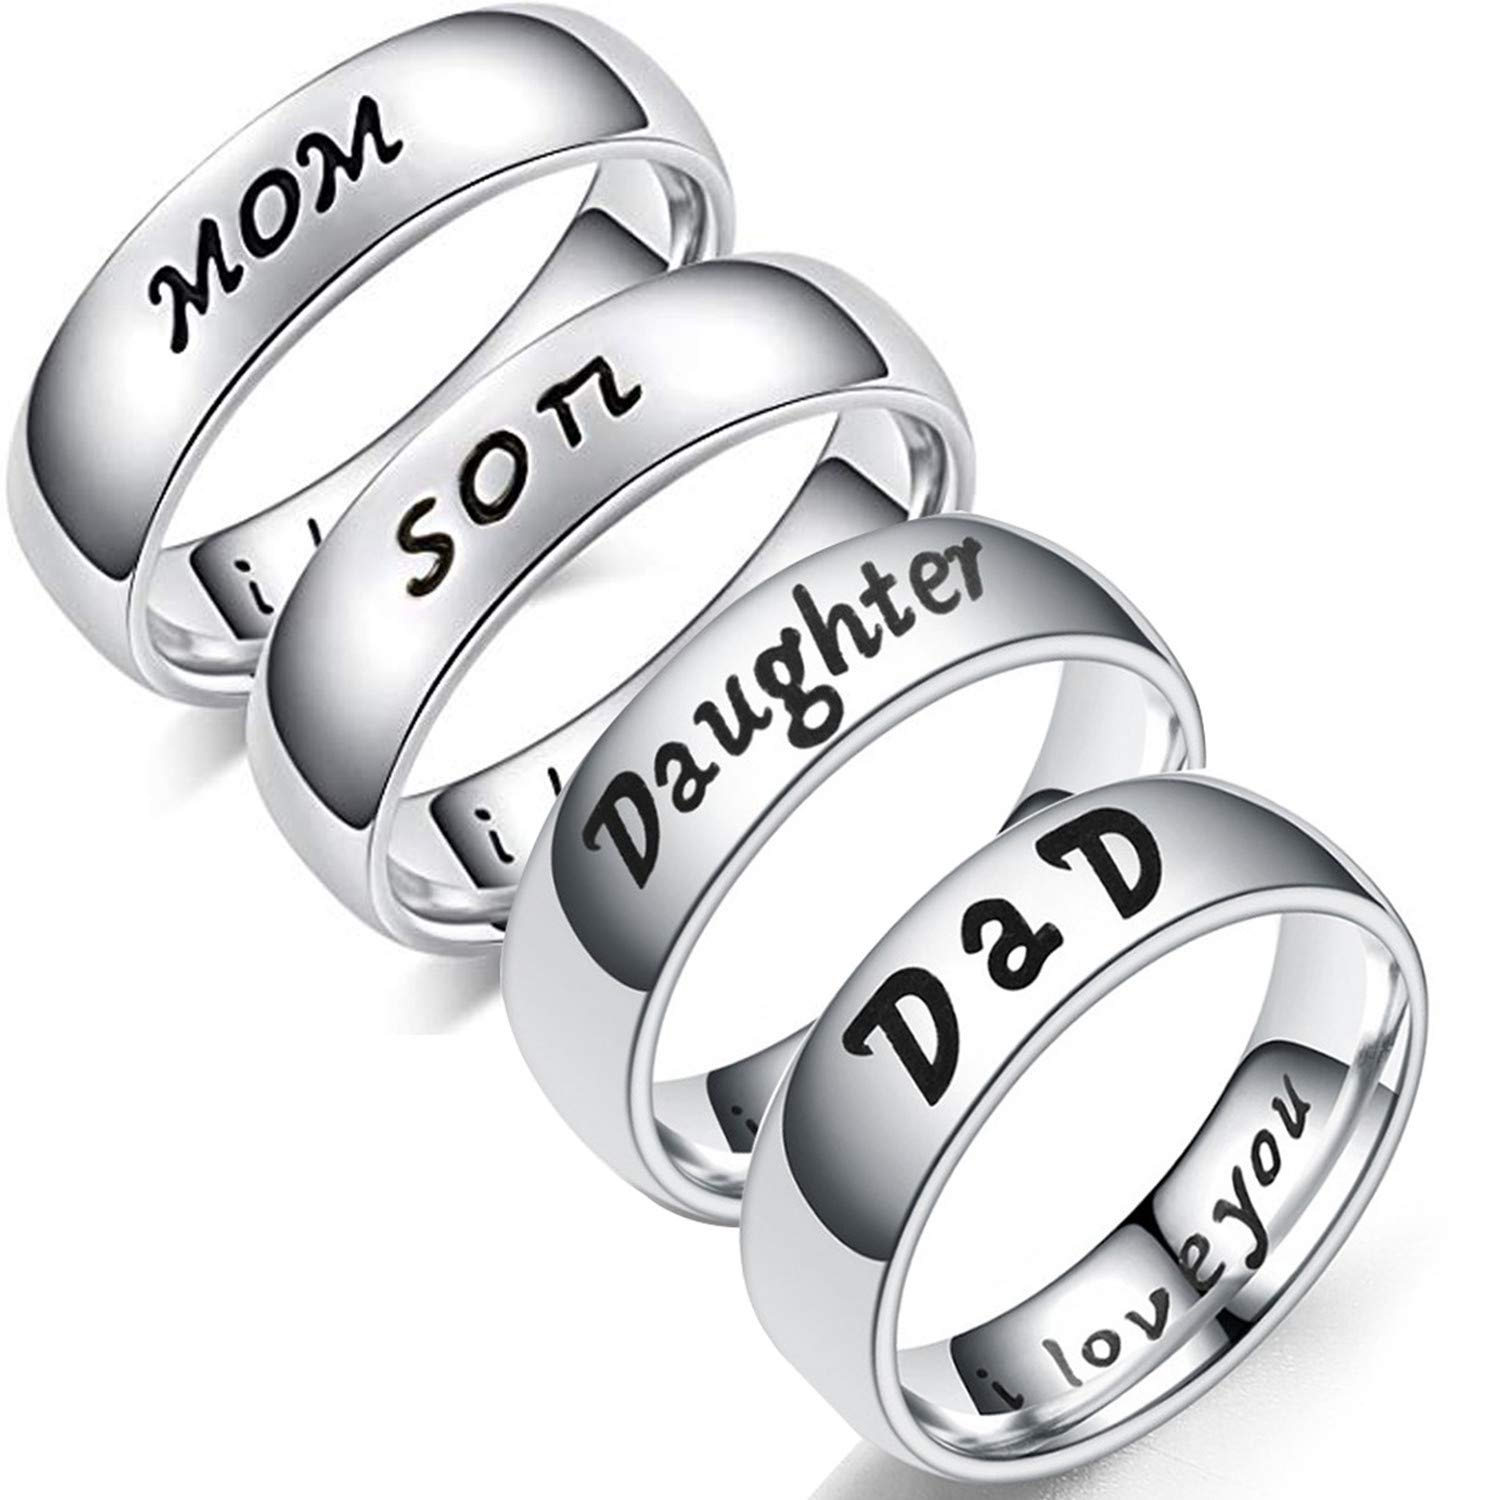 EVBEA Mens Rings Stainless Steel White Gold Plain Love Ring for Mens Couples Promise Family Mom Daughter Son Dad Gifts Jewelry in Gift Box